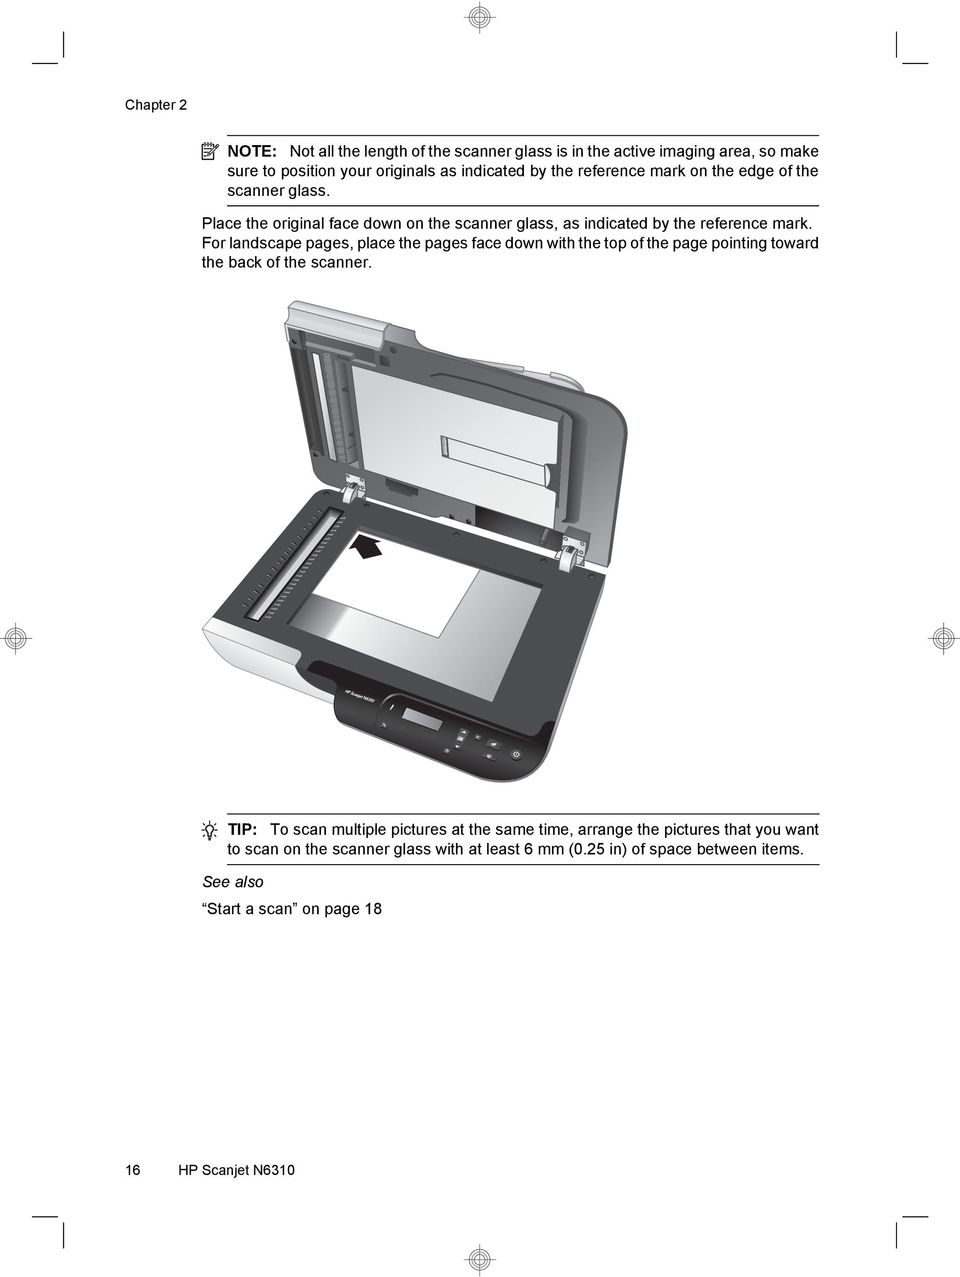 For landscape pages, place the pages face down with the top of the page pointing toward the back of the scanner.